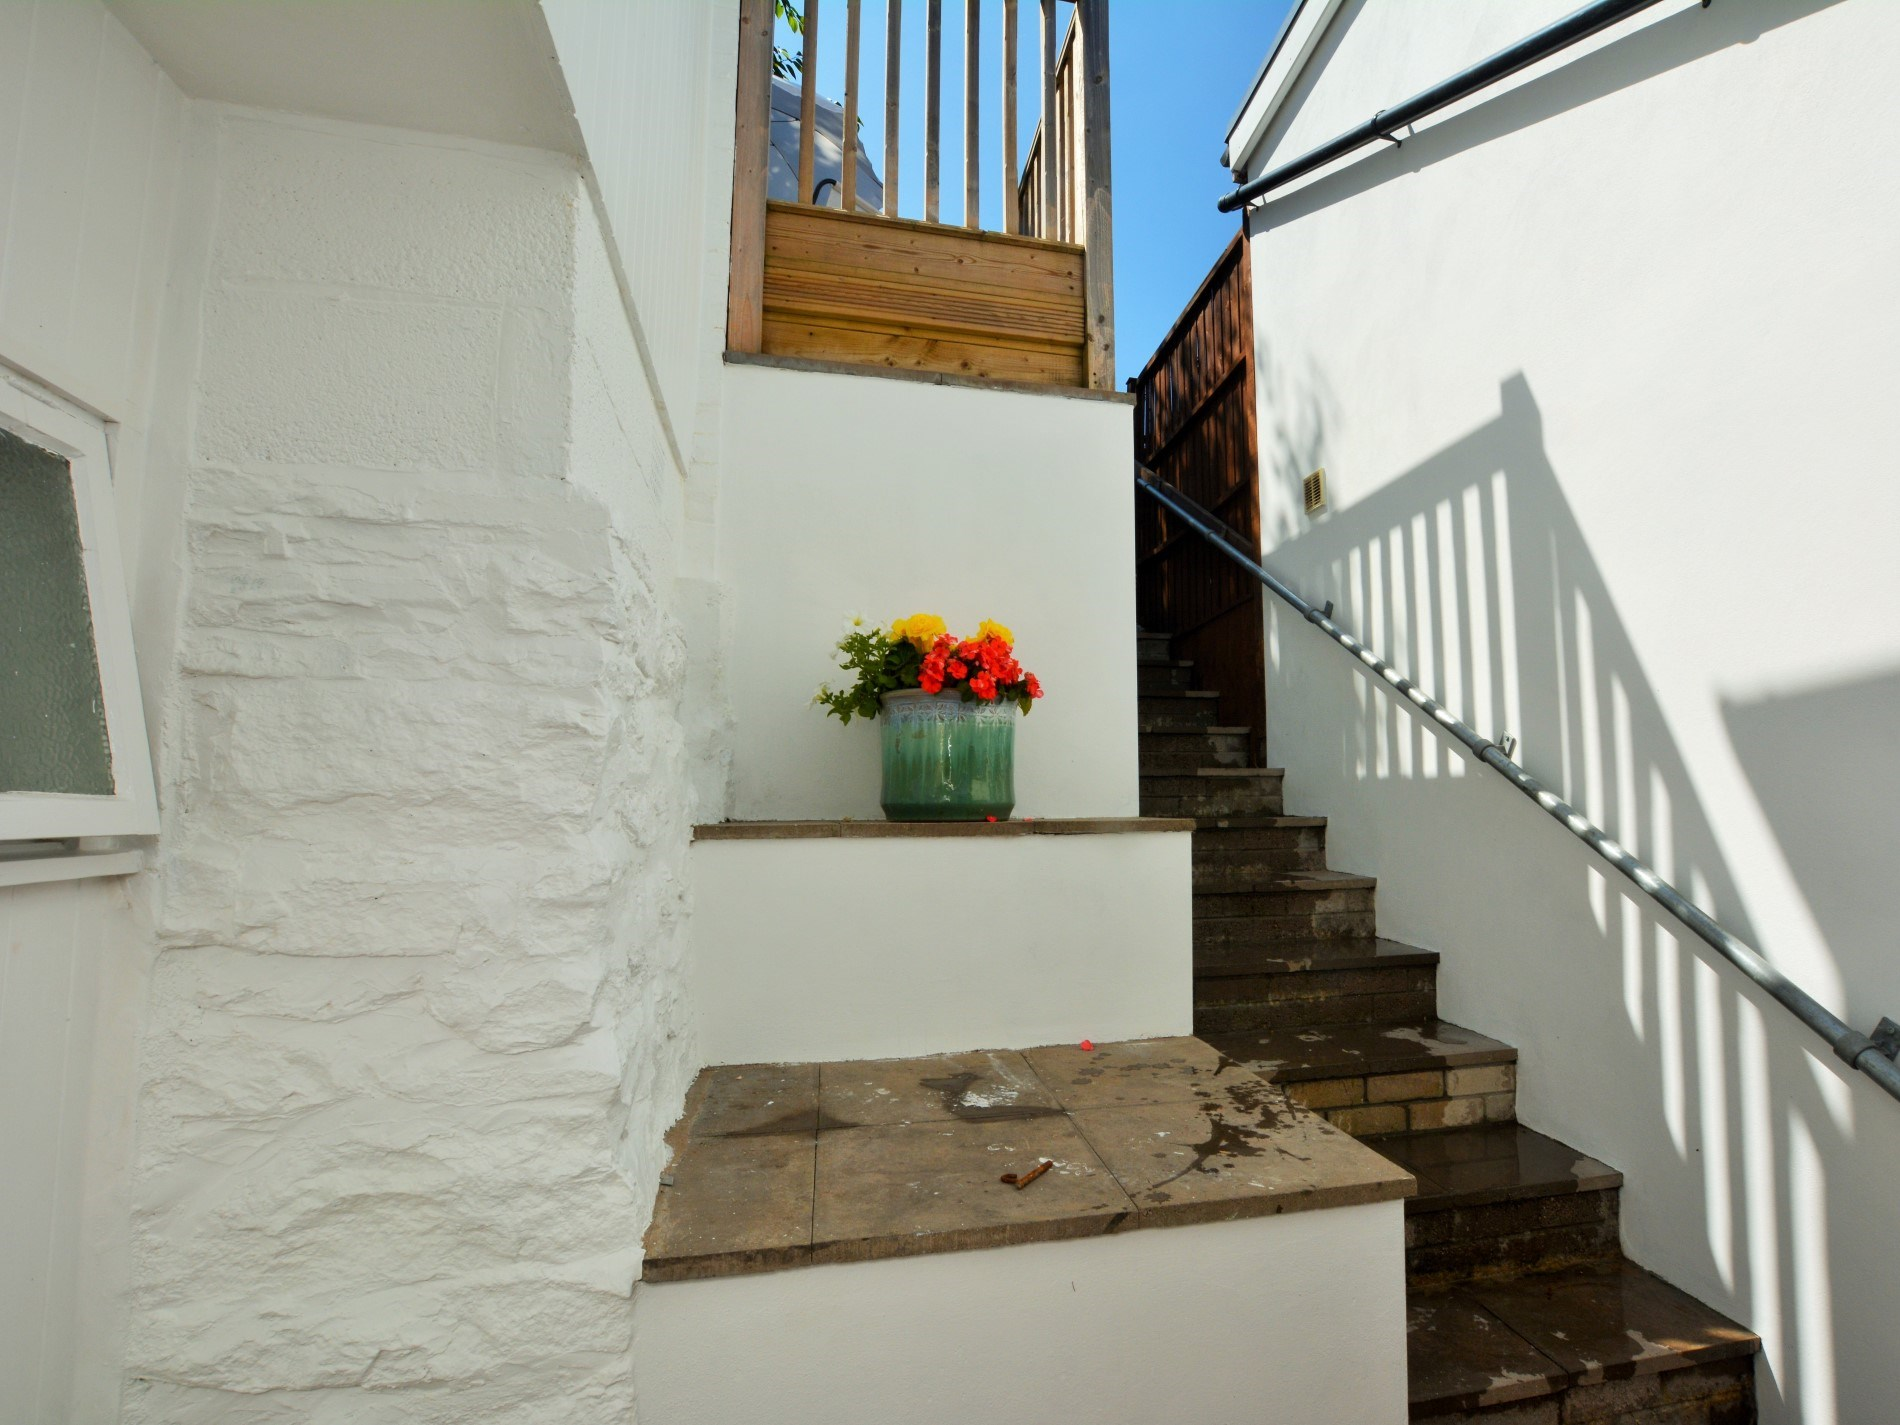 2 Bedroom Cottage in Knighton, Mid Wales